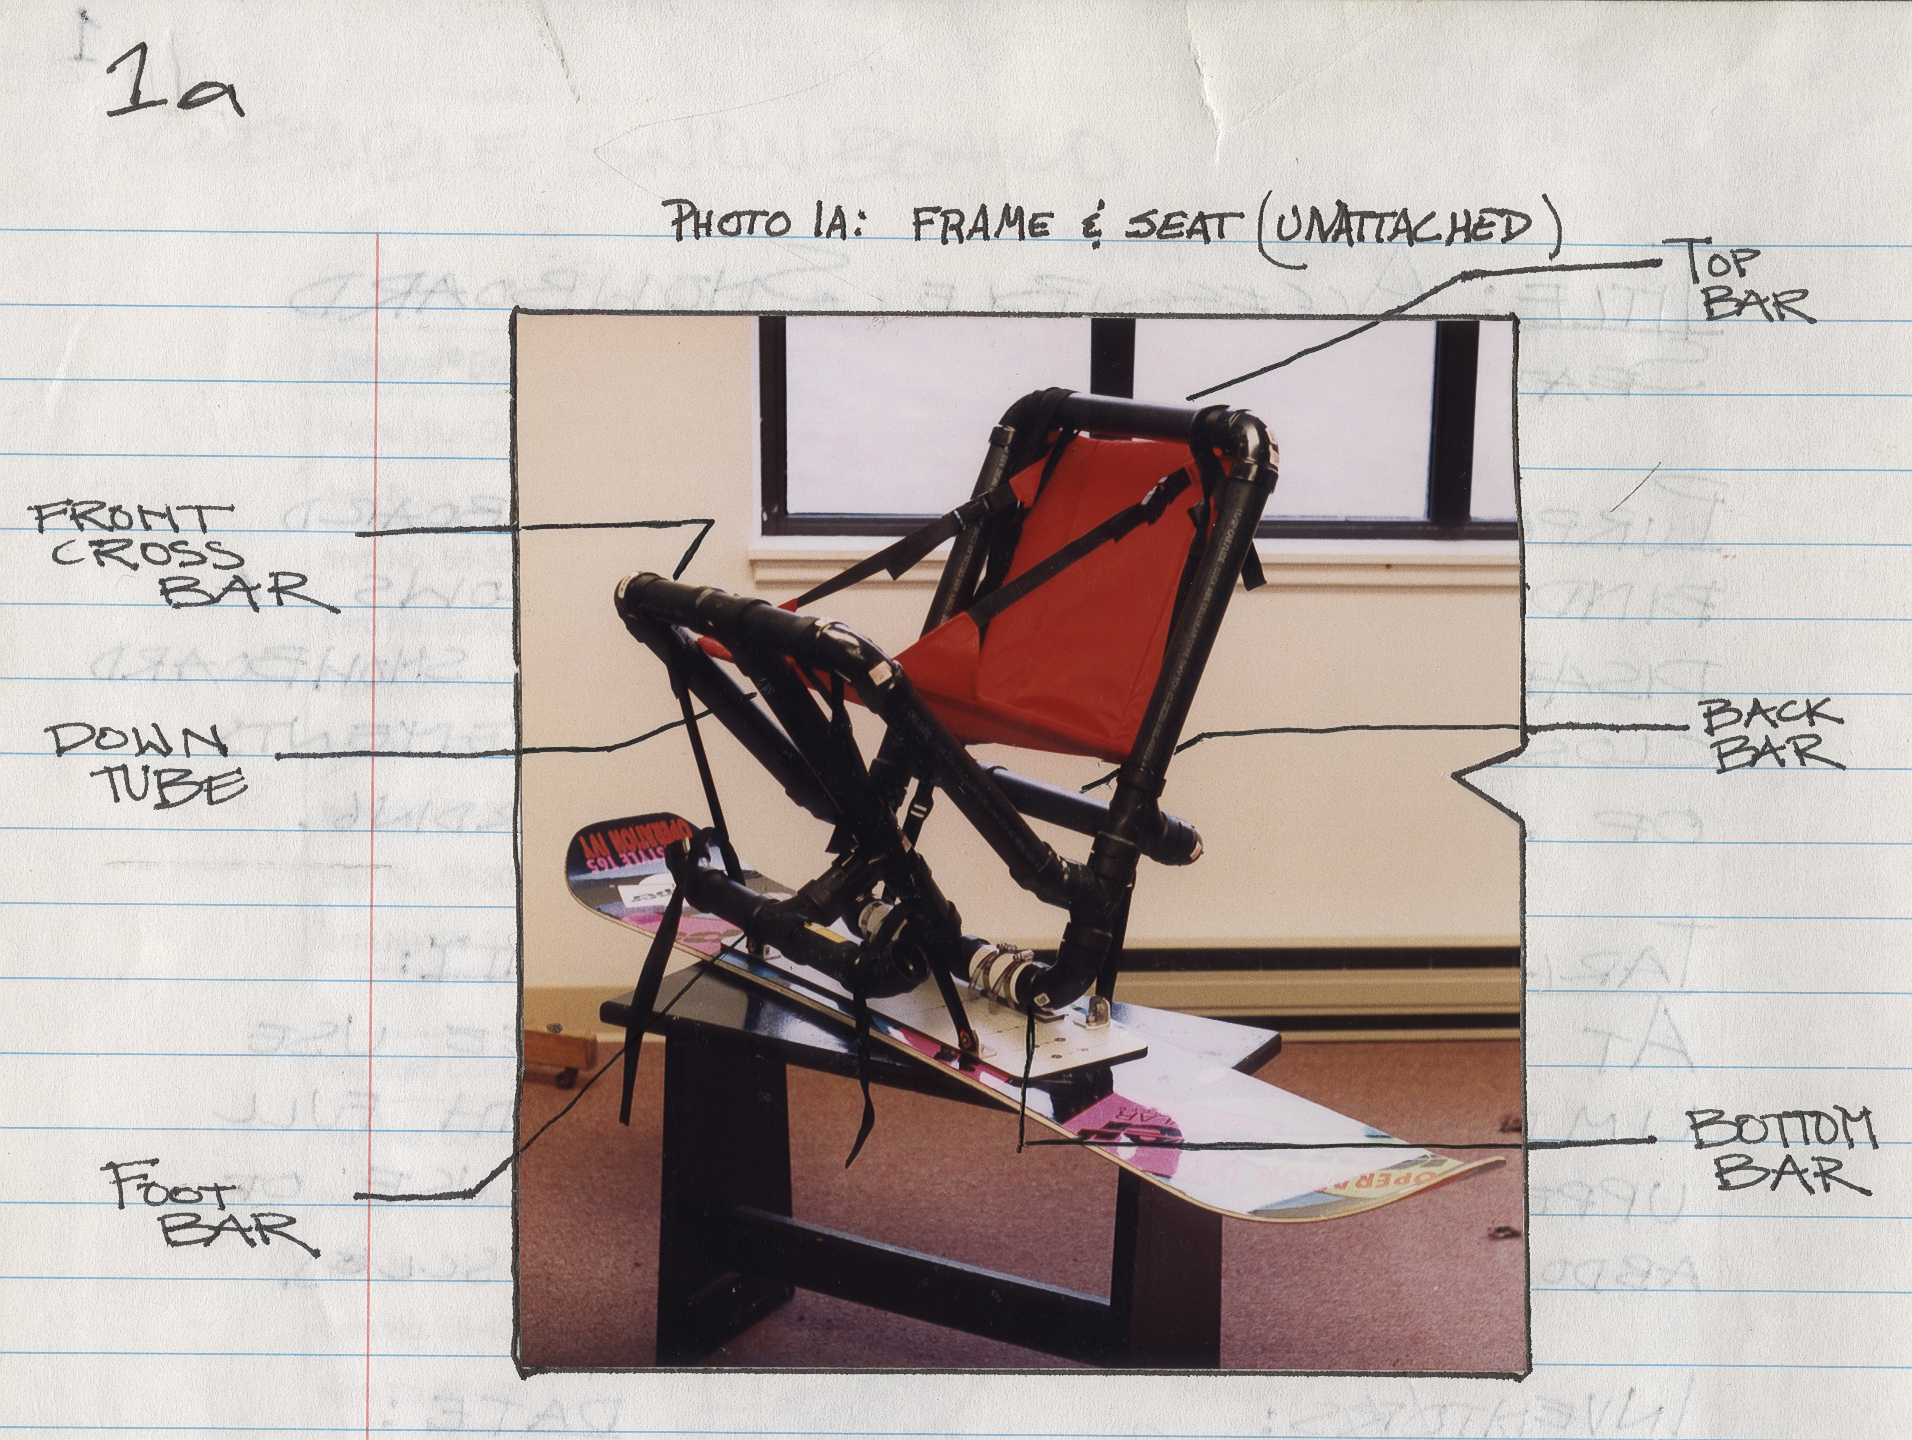 An annotated image of a prototype of the accessible snowboard, pasted into the invention notebook of Capozzi and Connolly